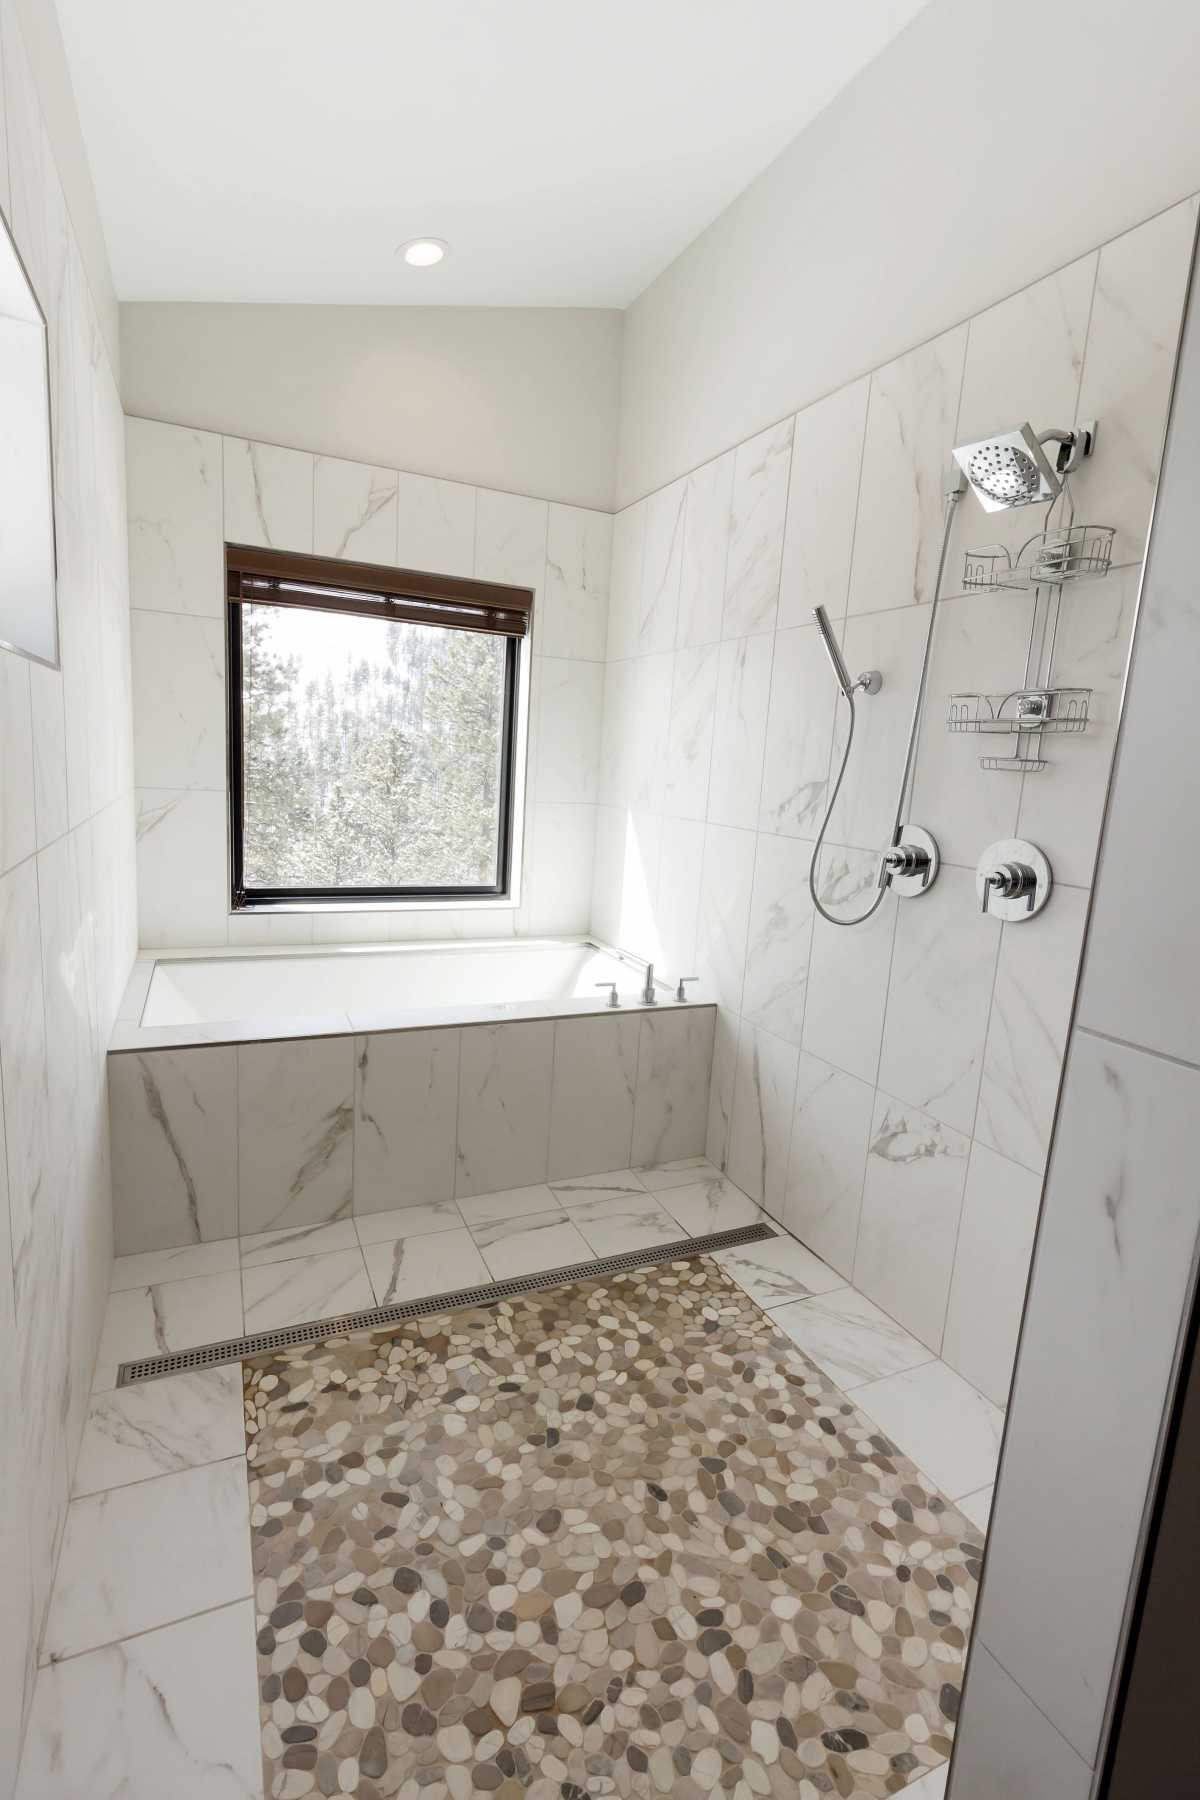 The tub and shower room provide a spa-like experience and overlook the canyon in the backyard!